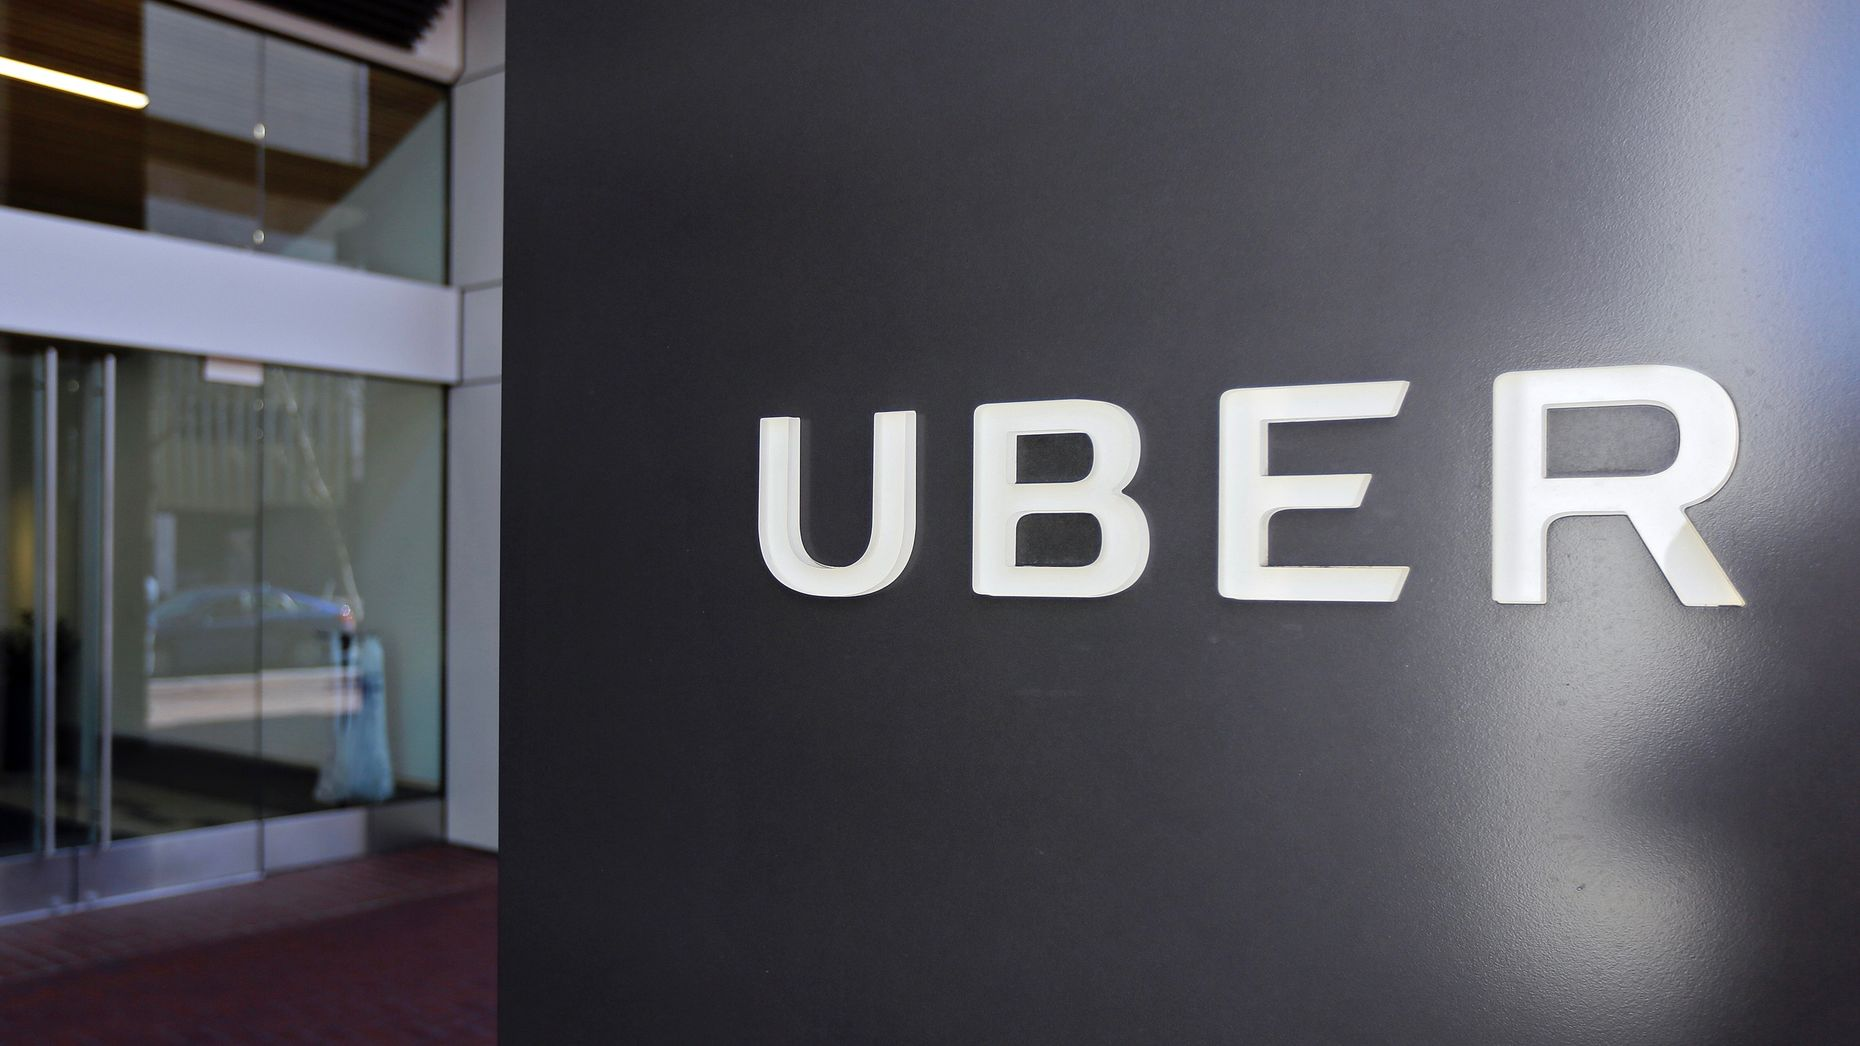 Uber files appeal against London ban